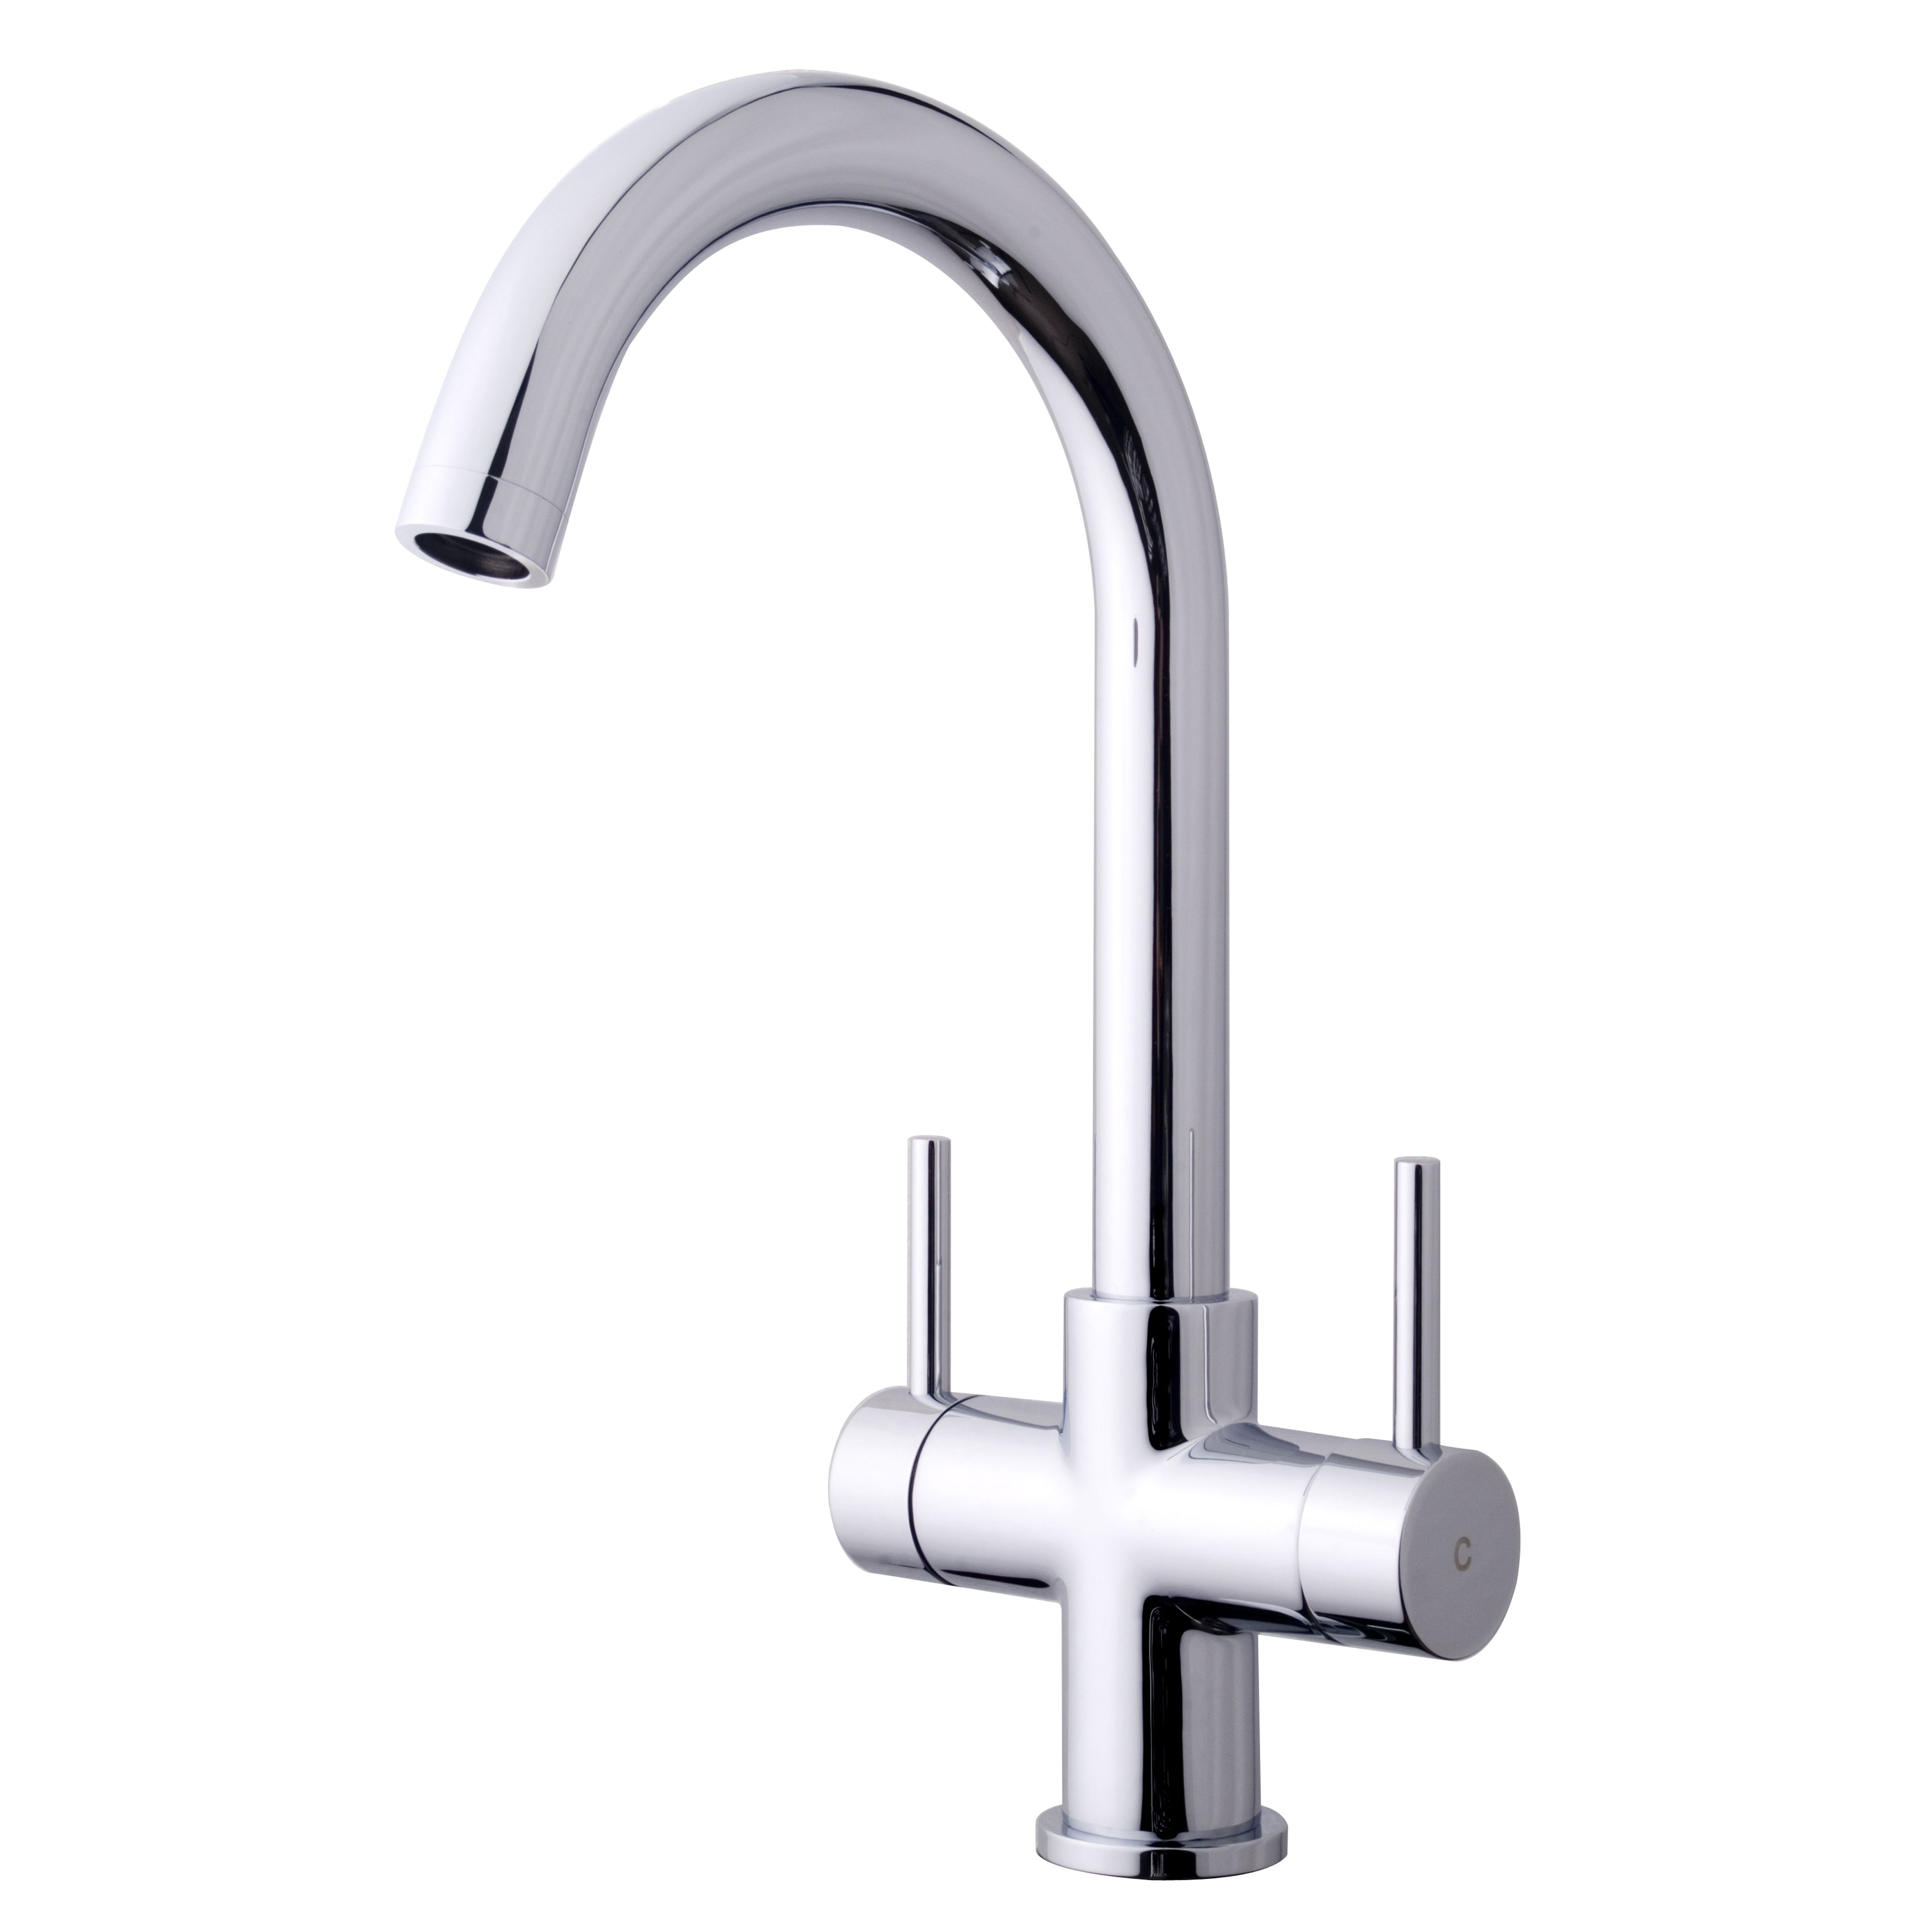 Diy supplies accessories diy at b q - Cooke Lewis Zale Chrome Effect Kitchen Monobloc Tap